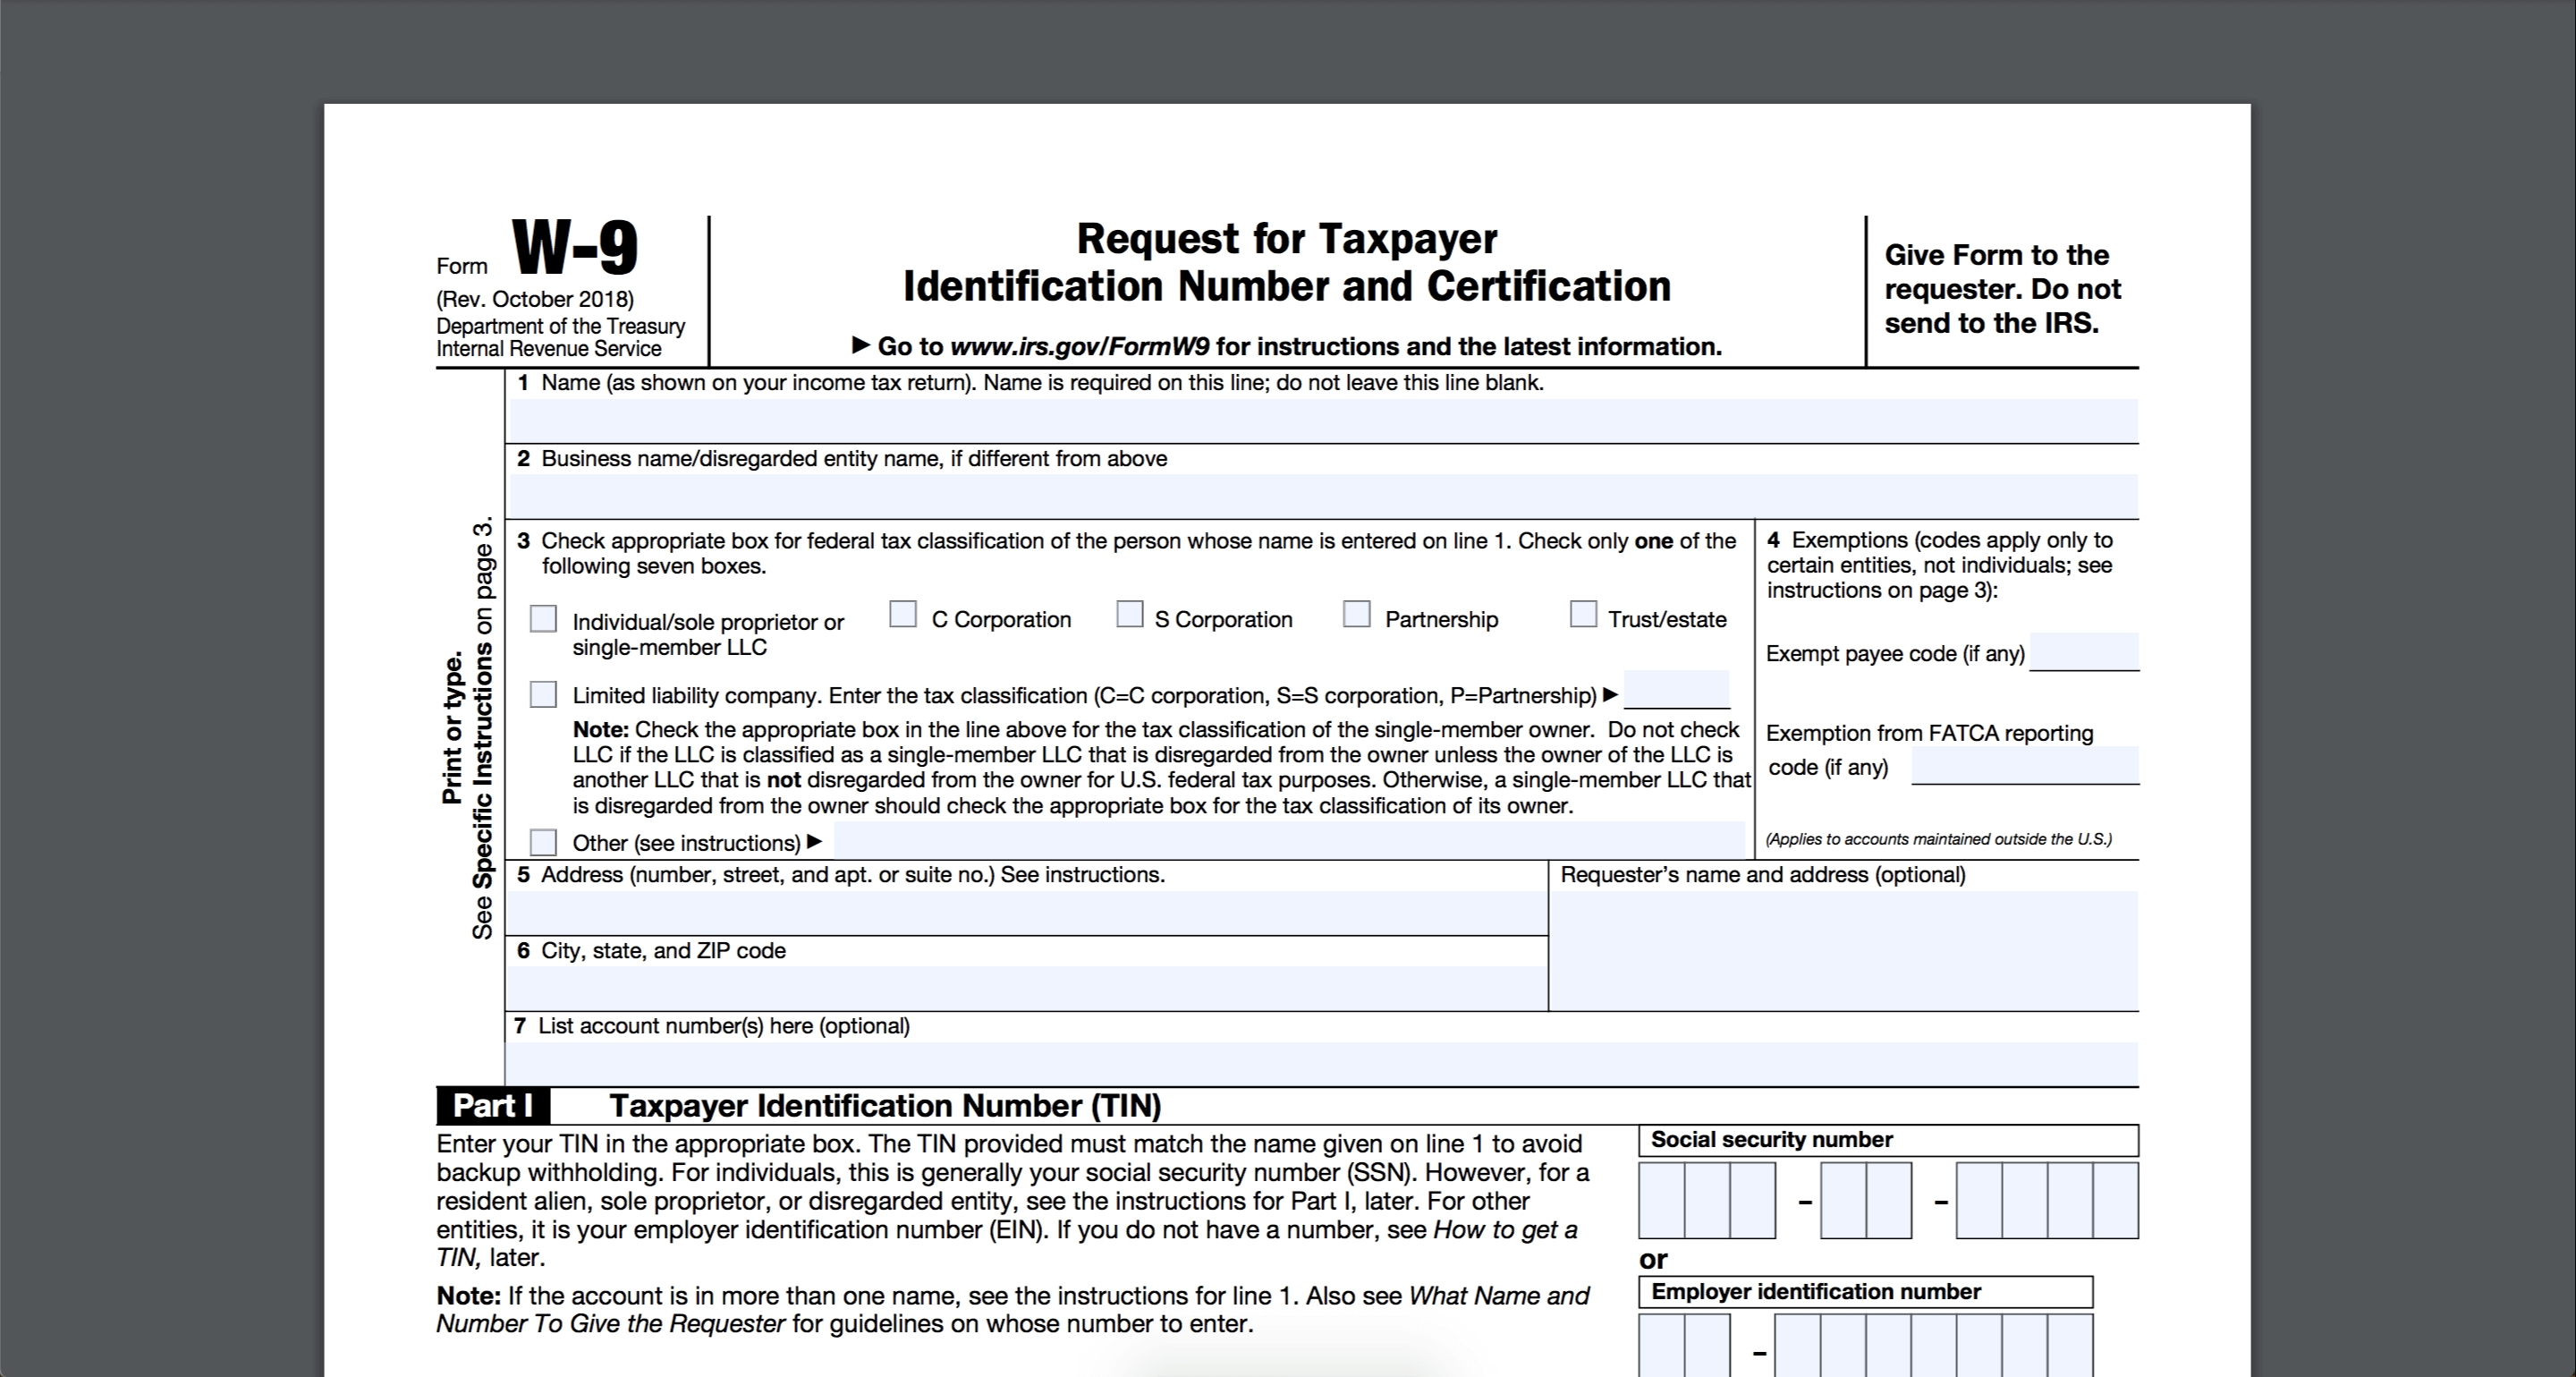 How To Fill Out And Sign Your W-9 Form Online-Blank Printable W9 Form